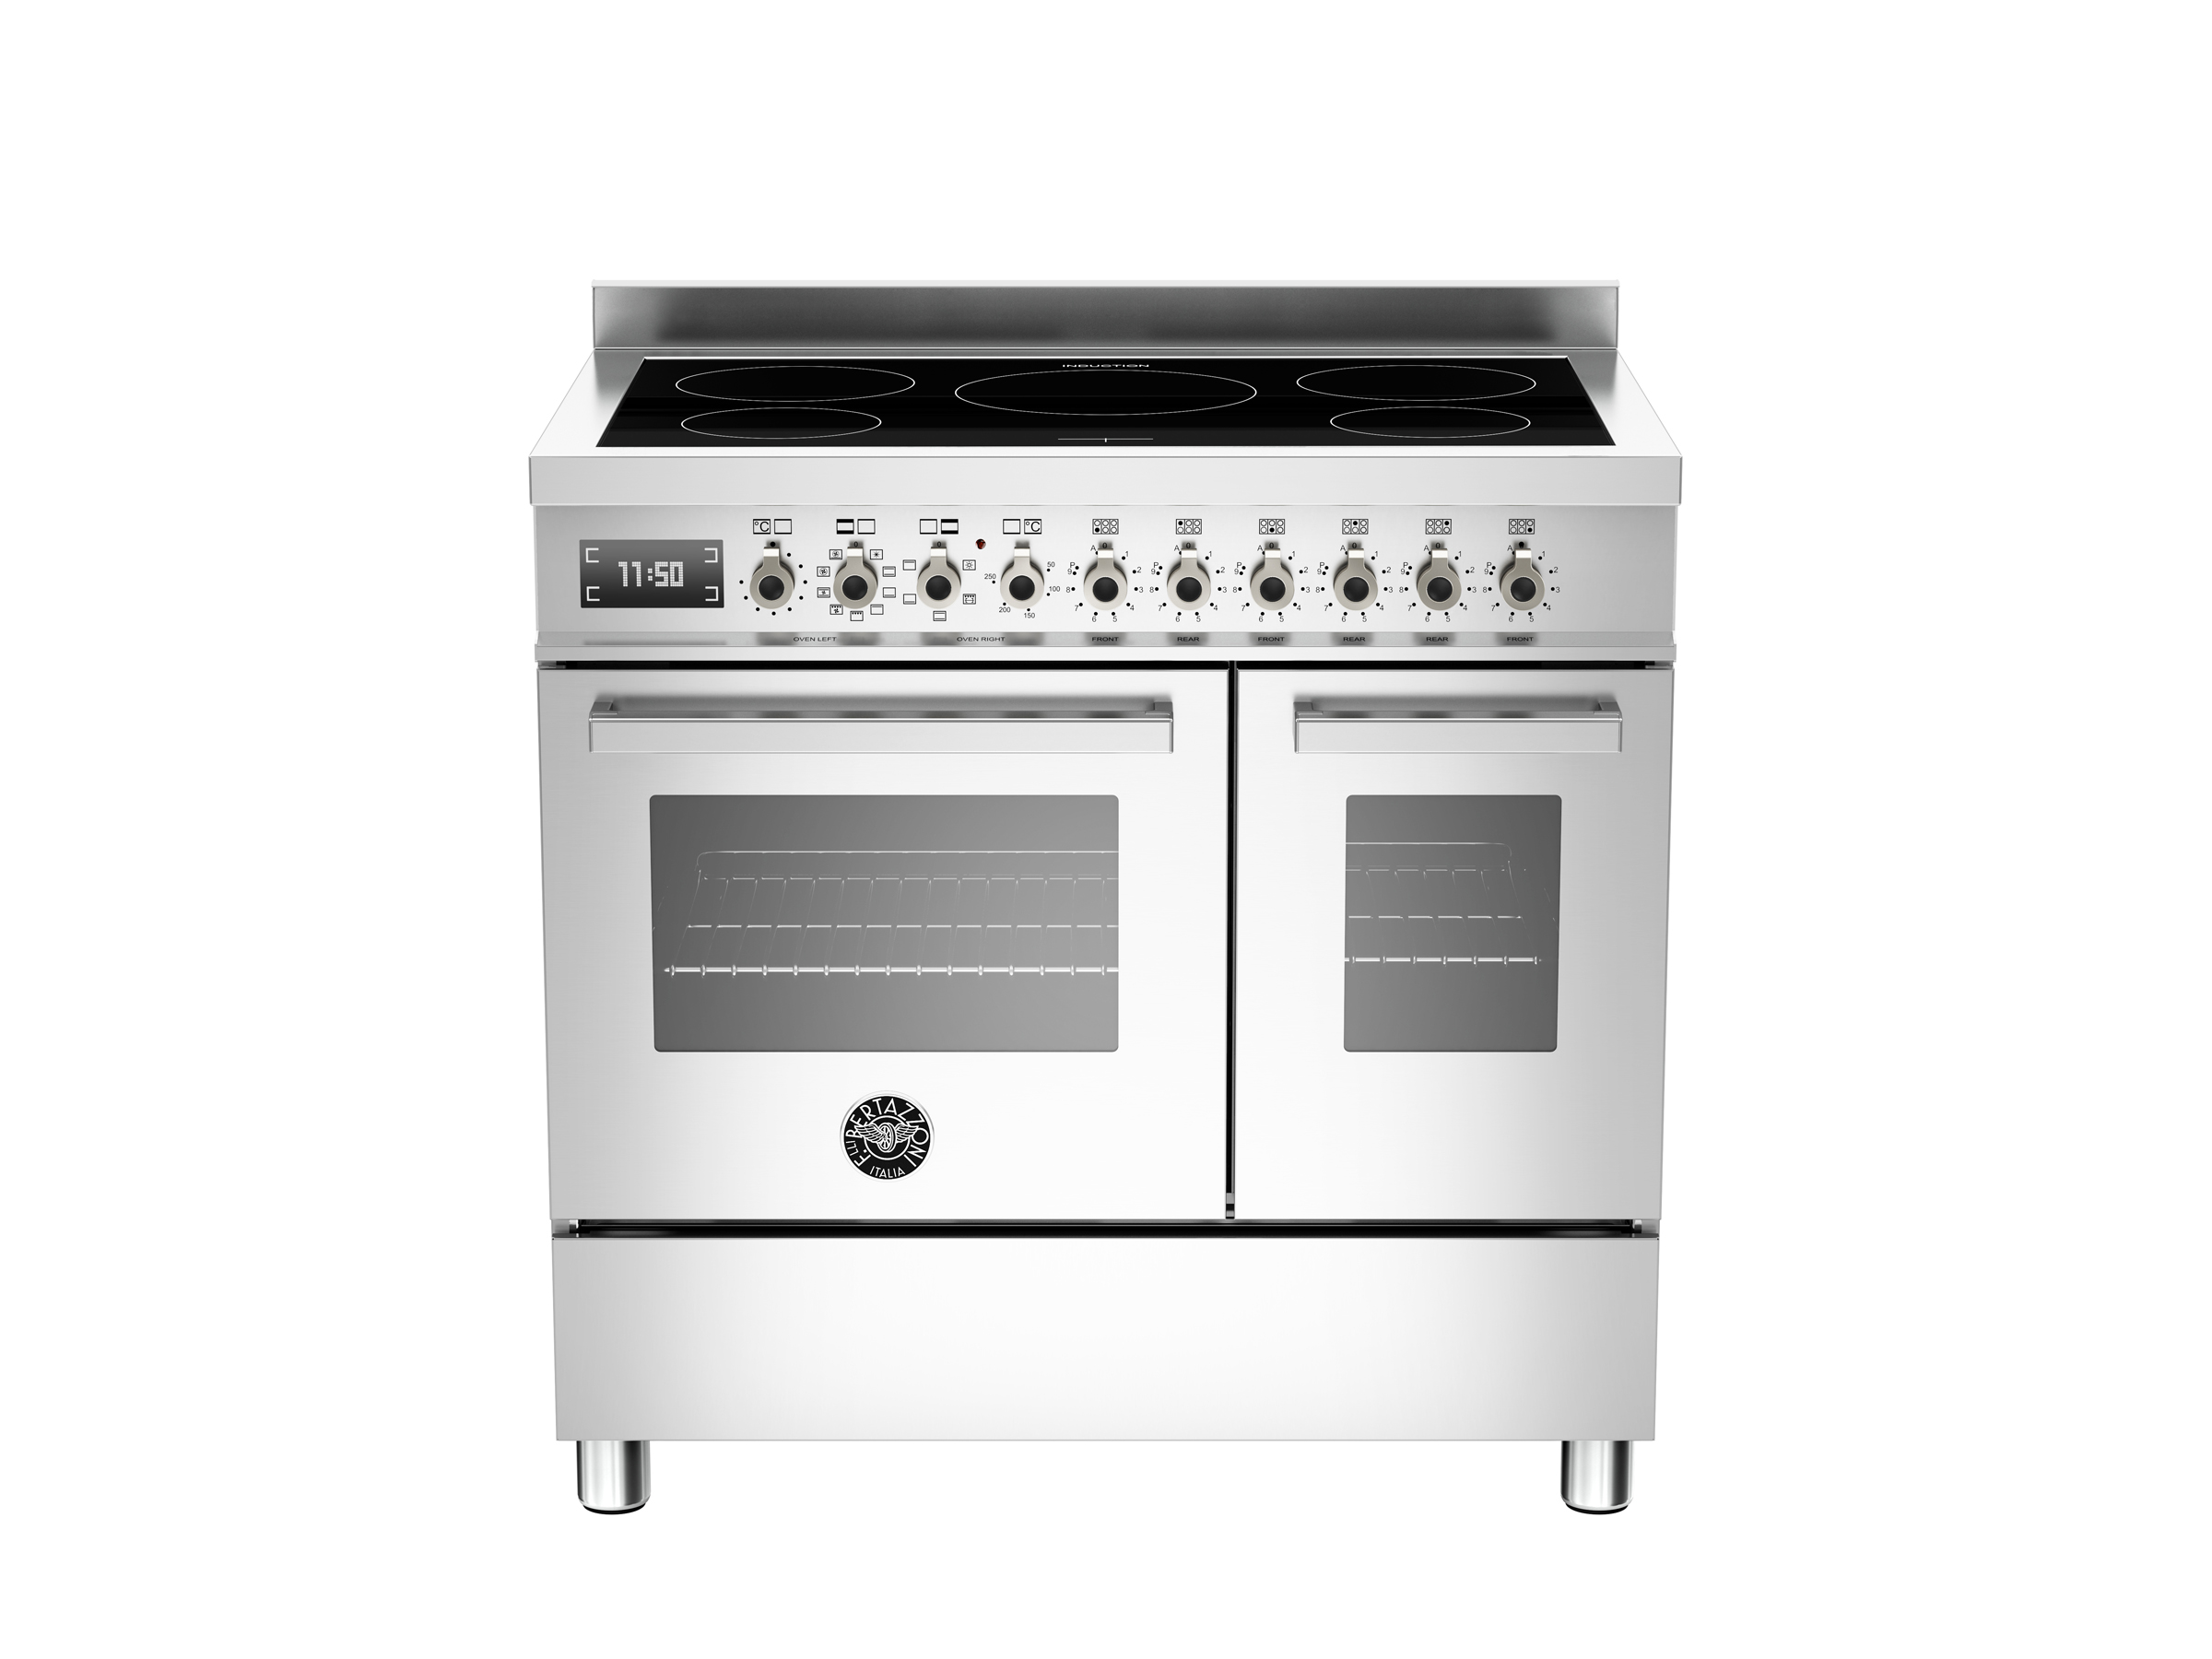 90 cm induction top electric double oven | Bertazzoni